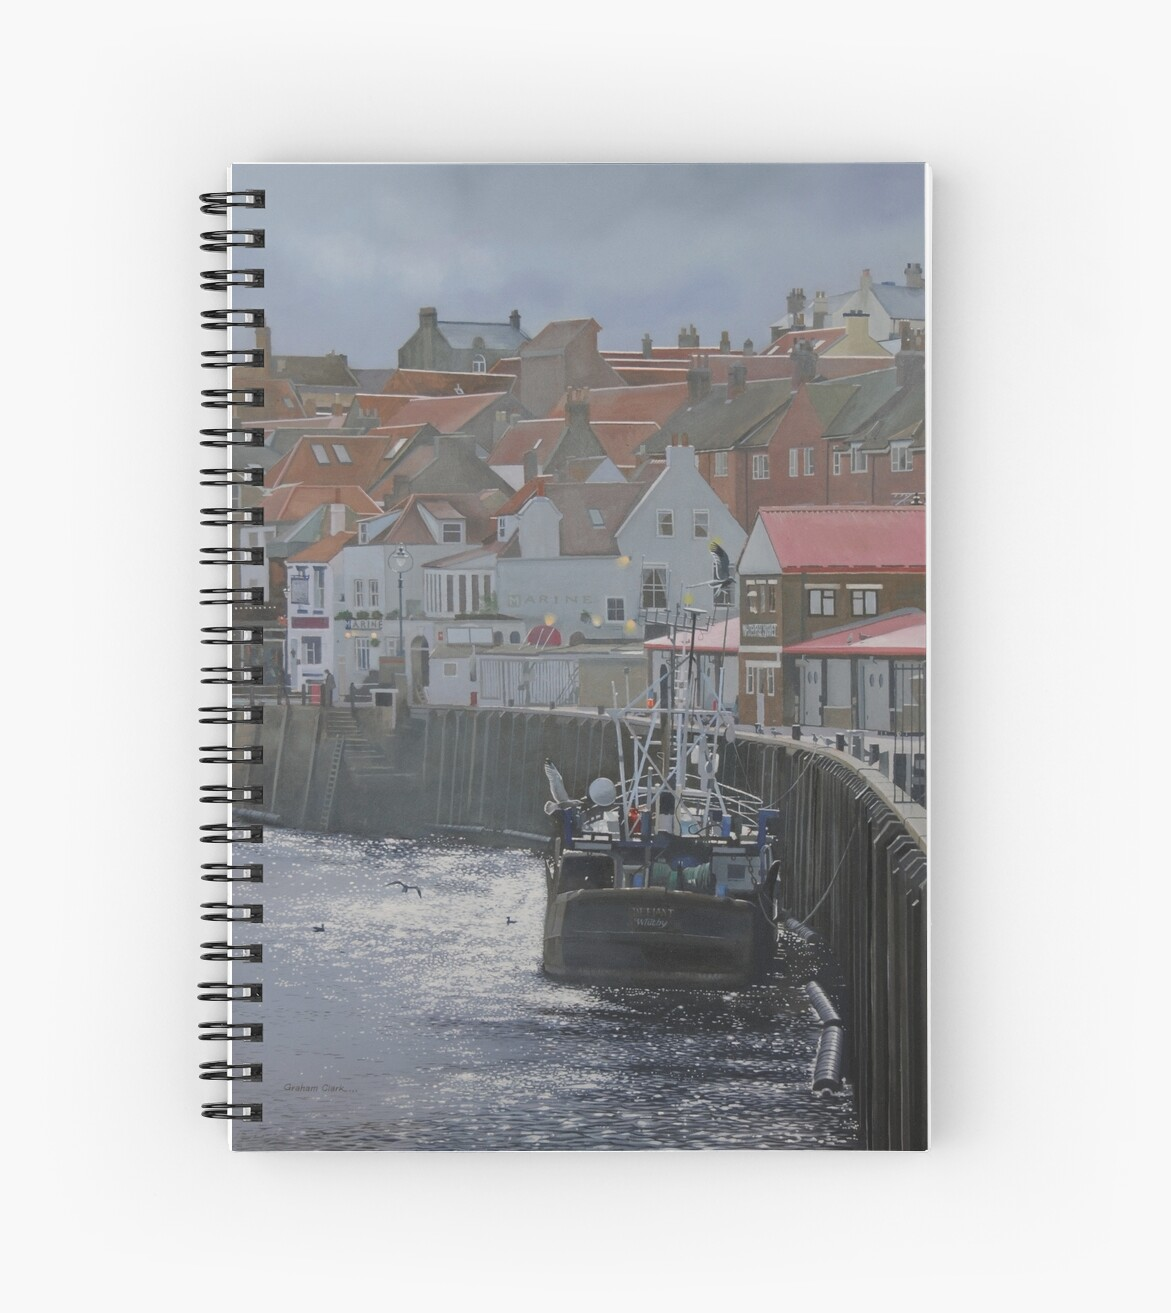 'Defiant' - Whitby by Graham Clark